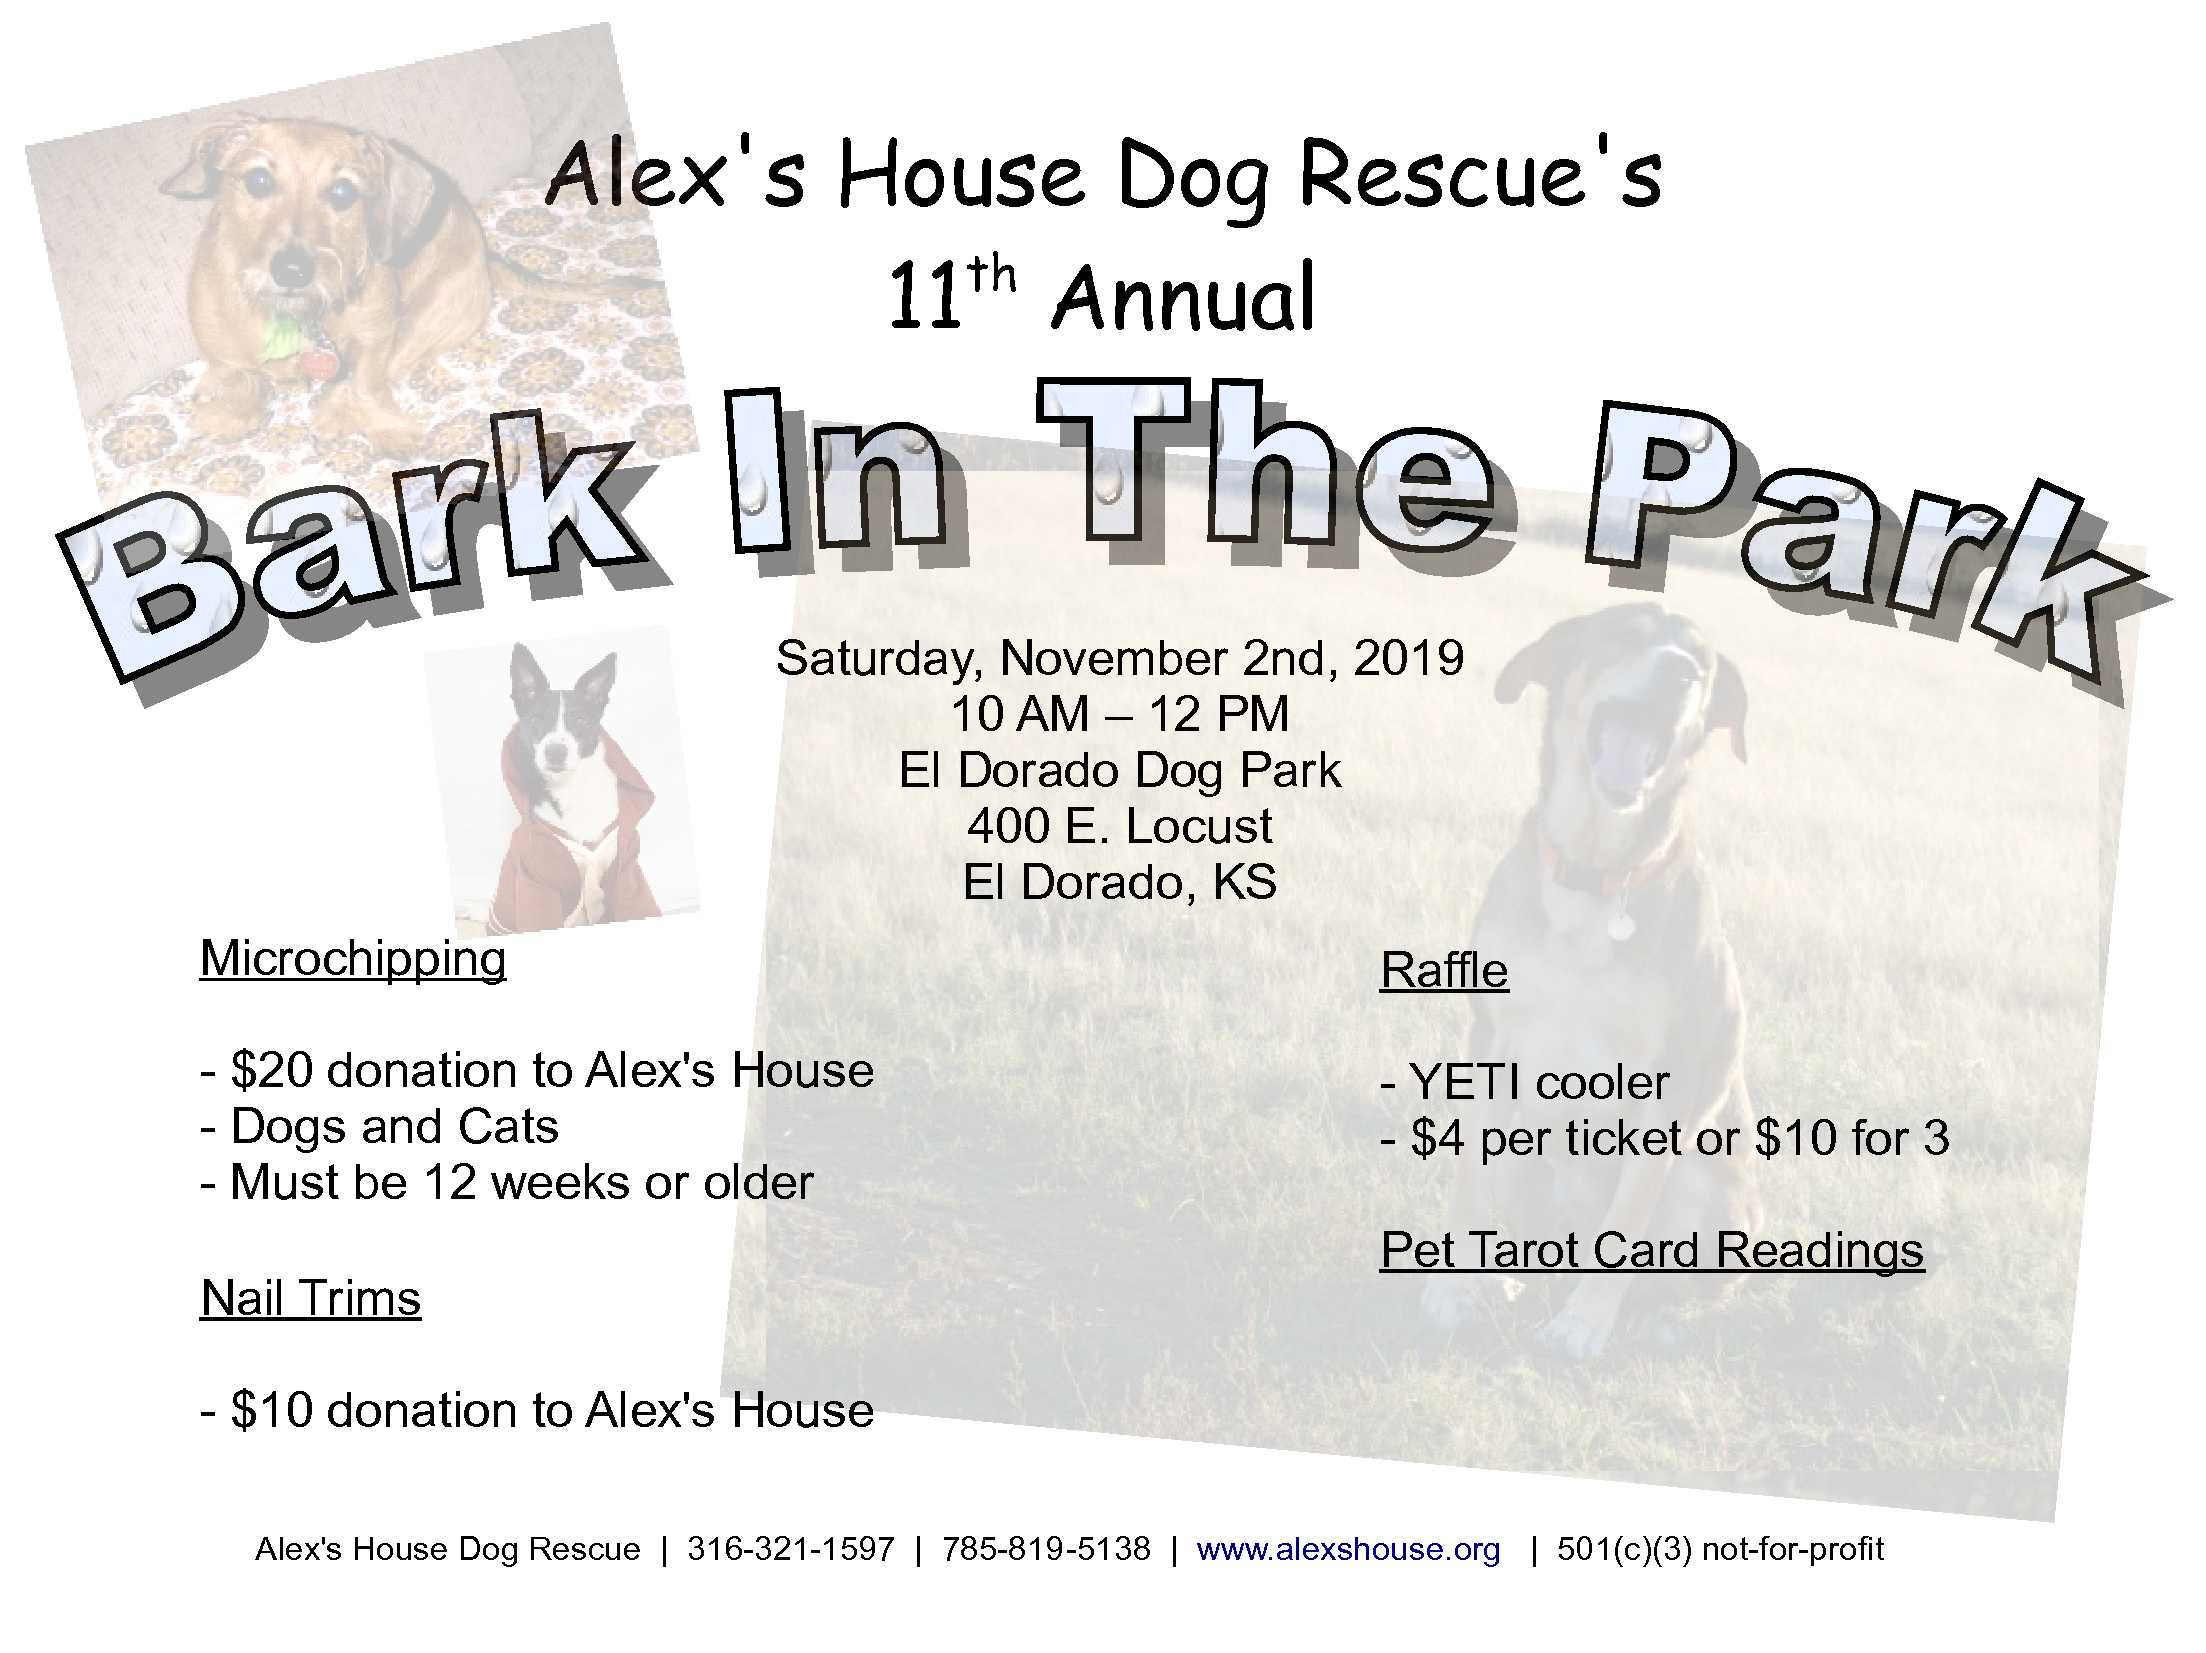 11.2.19 Bark in the Park